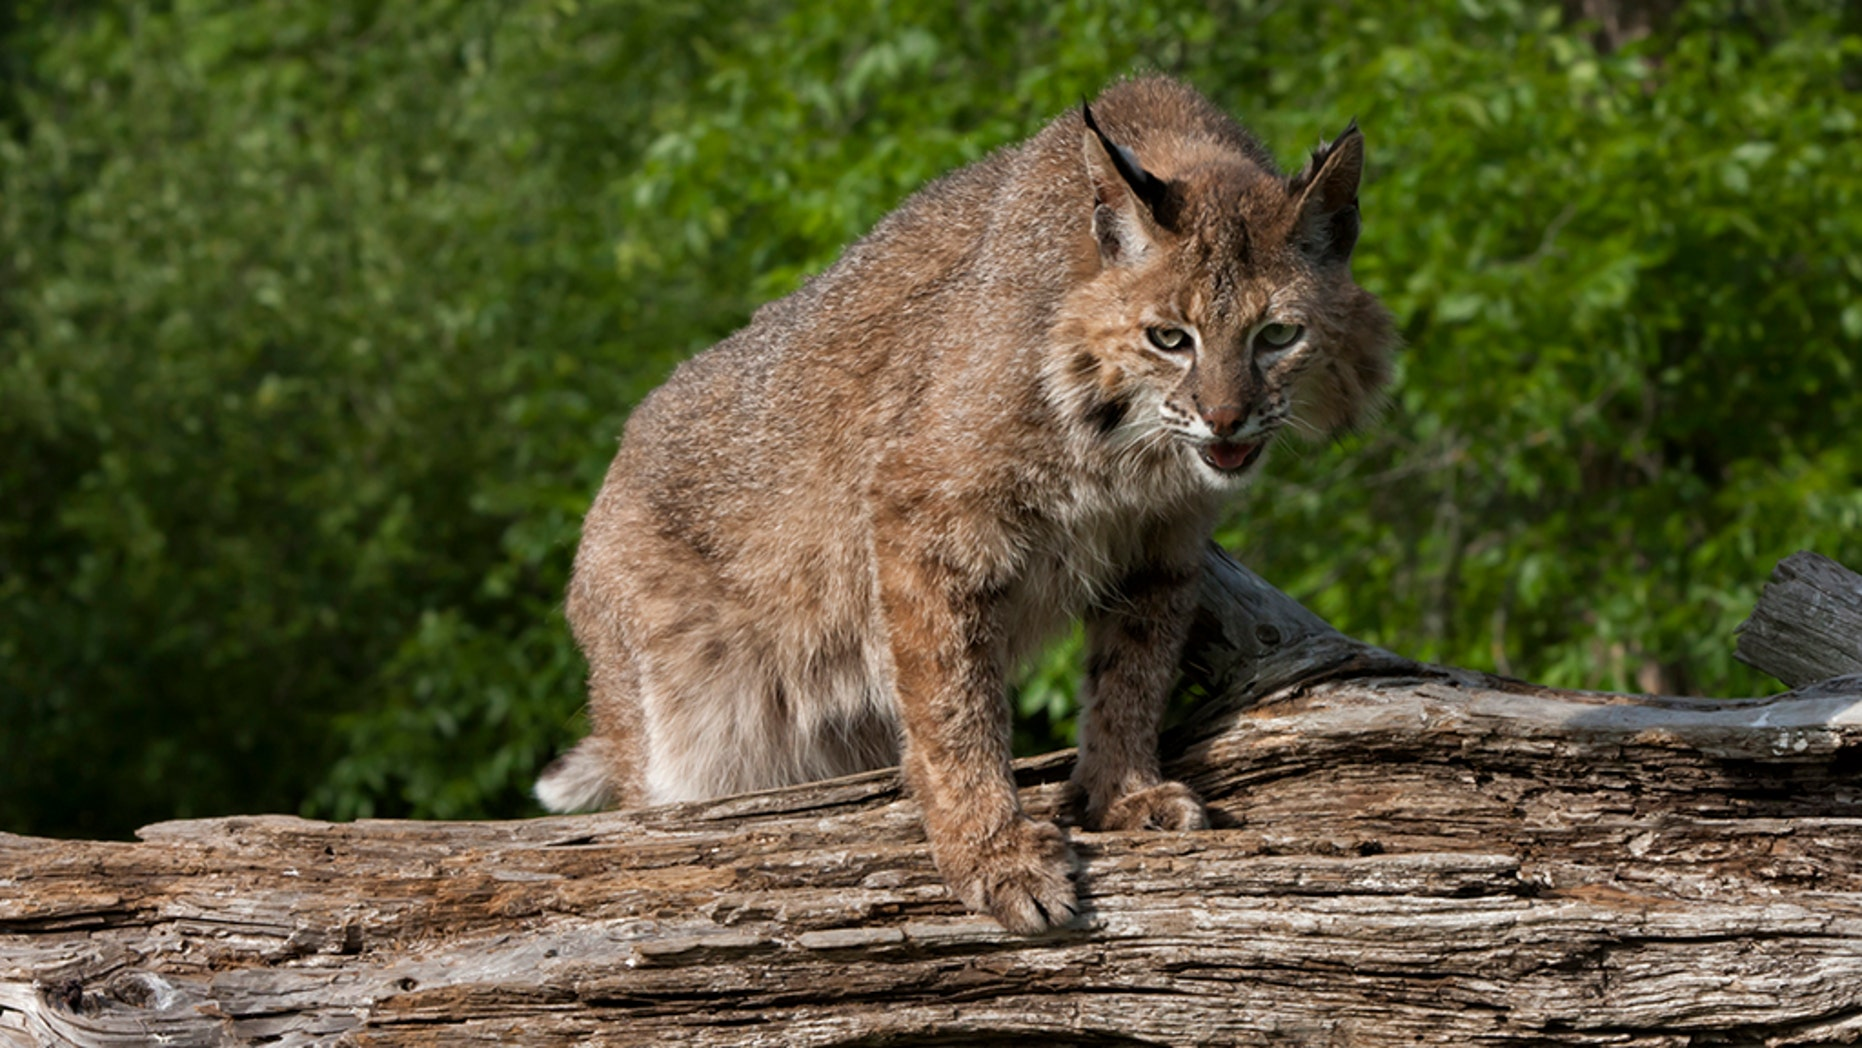 DeDe Phillips, a grandmother from Georgia, claims she strangled a bobcat to death after it attacked her.